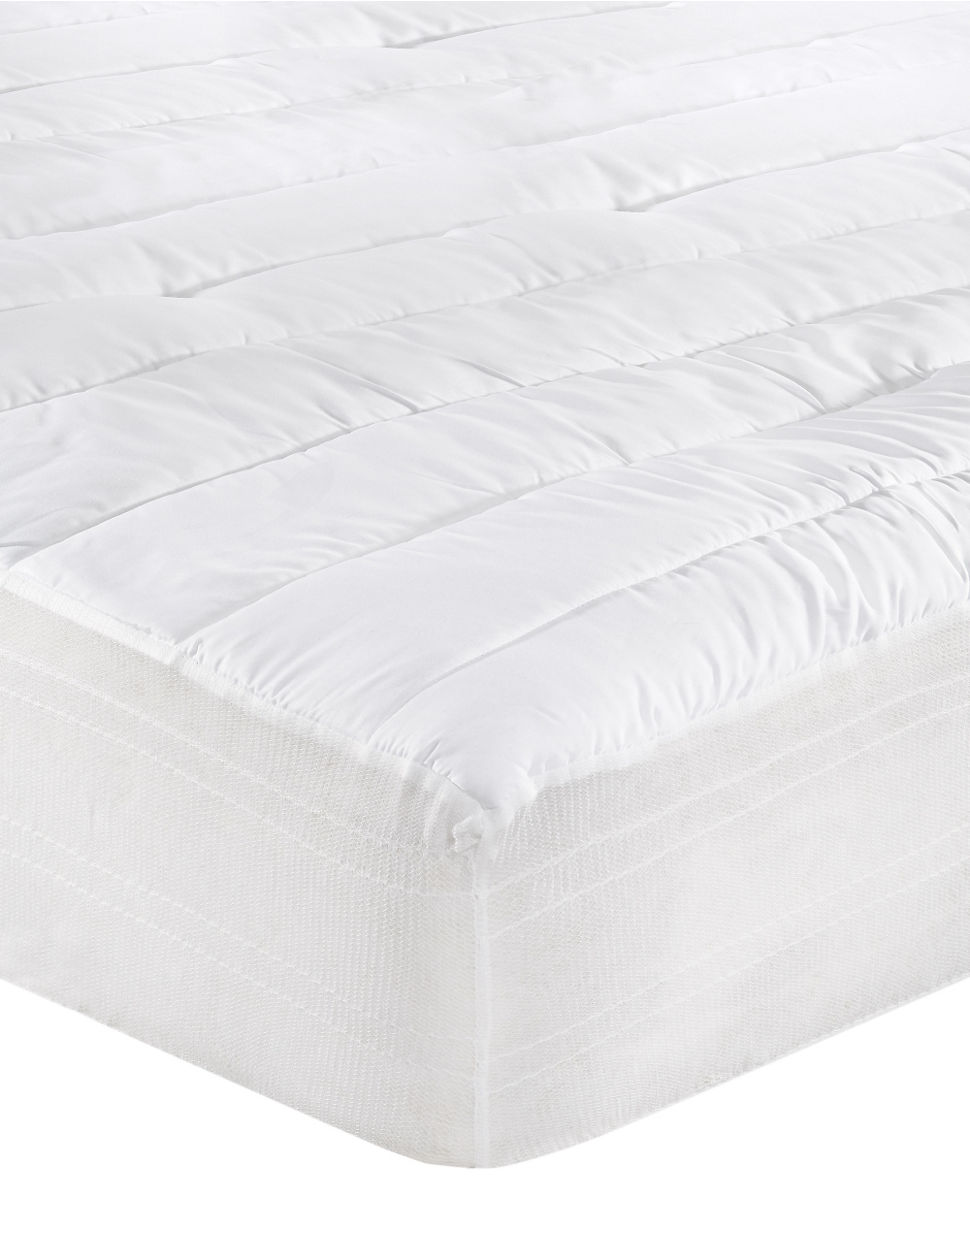 pad memory en canada walmart beautyrest fill mattress ip